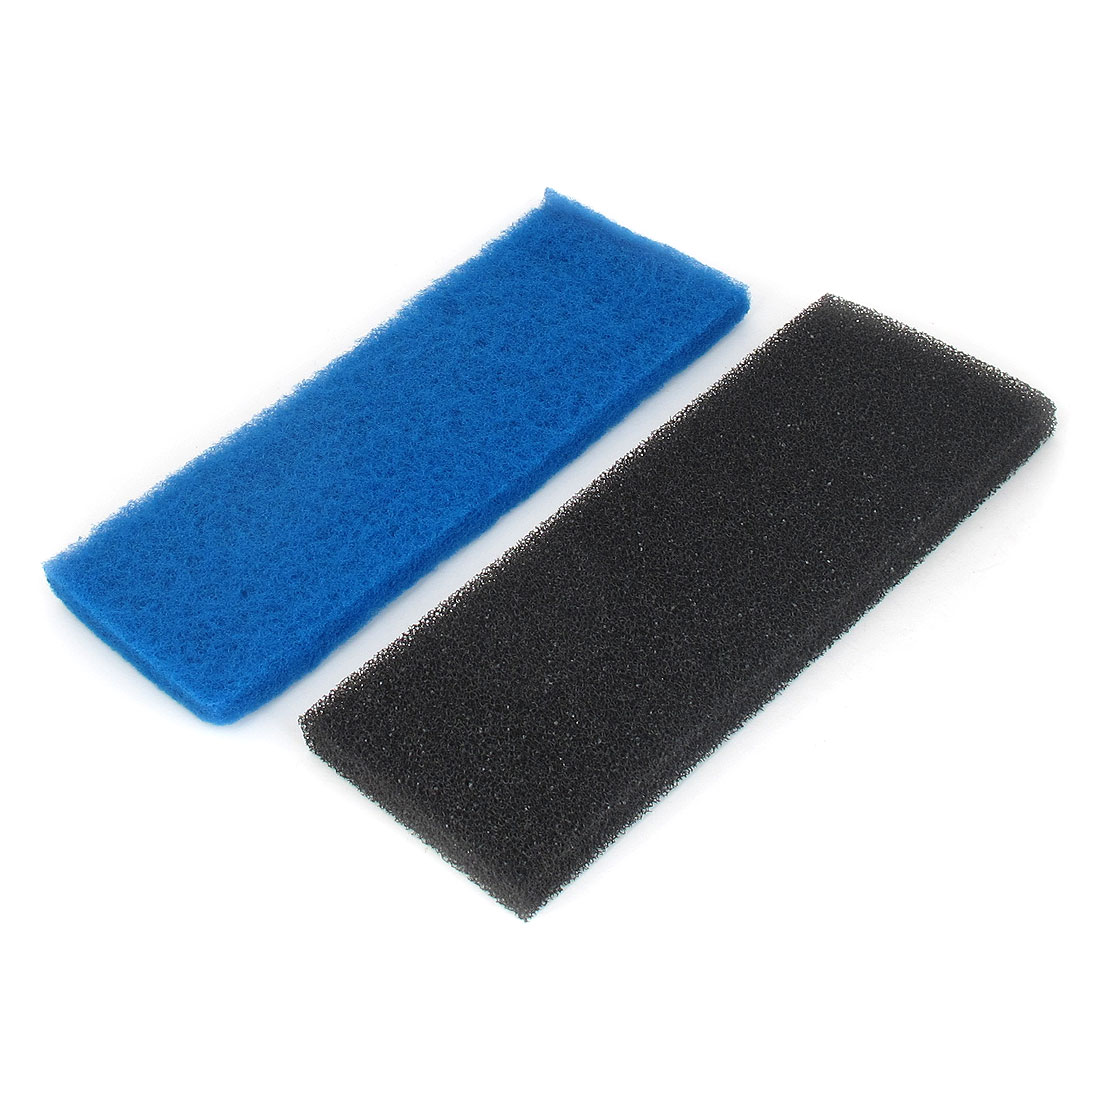 Aquarium Fish Tank Rectangular Biochemical Filter Sponge Pad Black Blue 32cmx12cmx2cm 2pcs